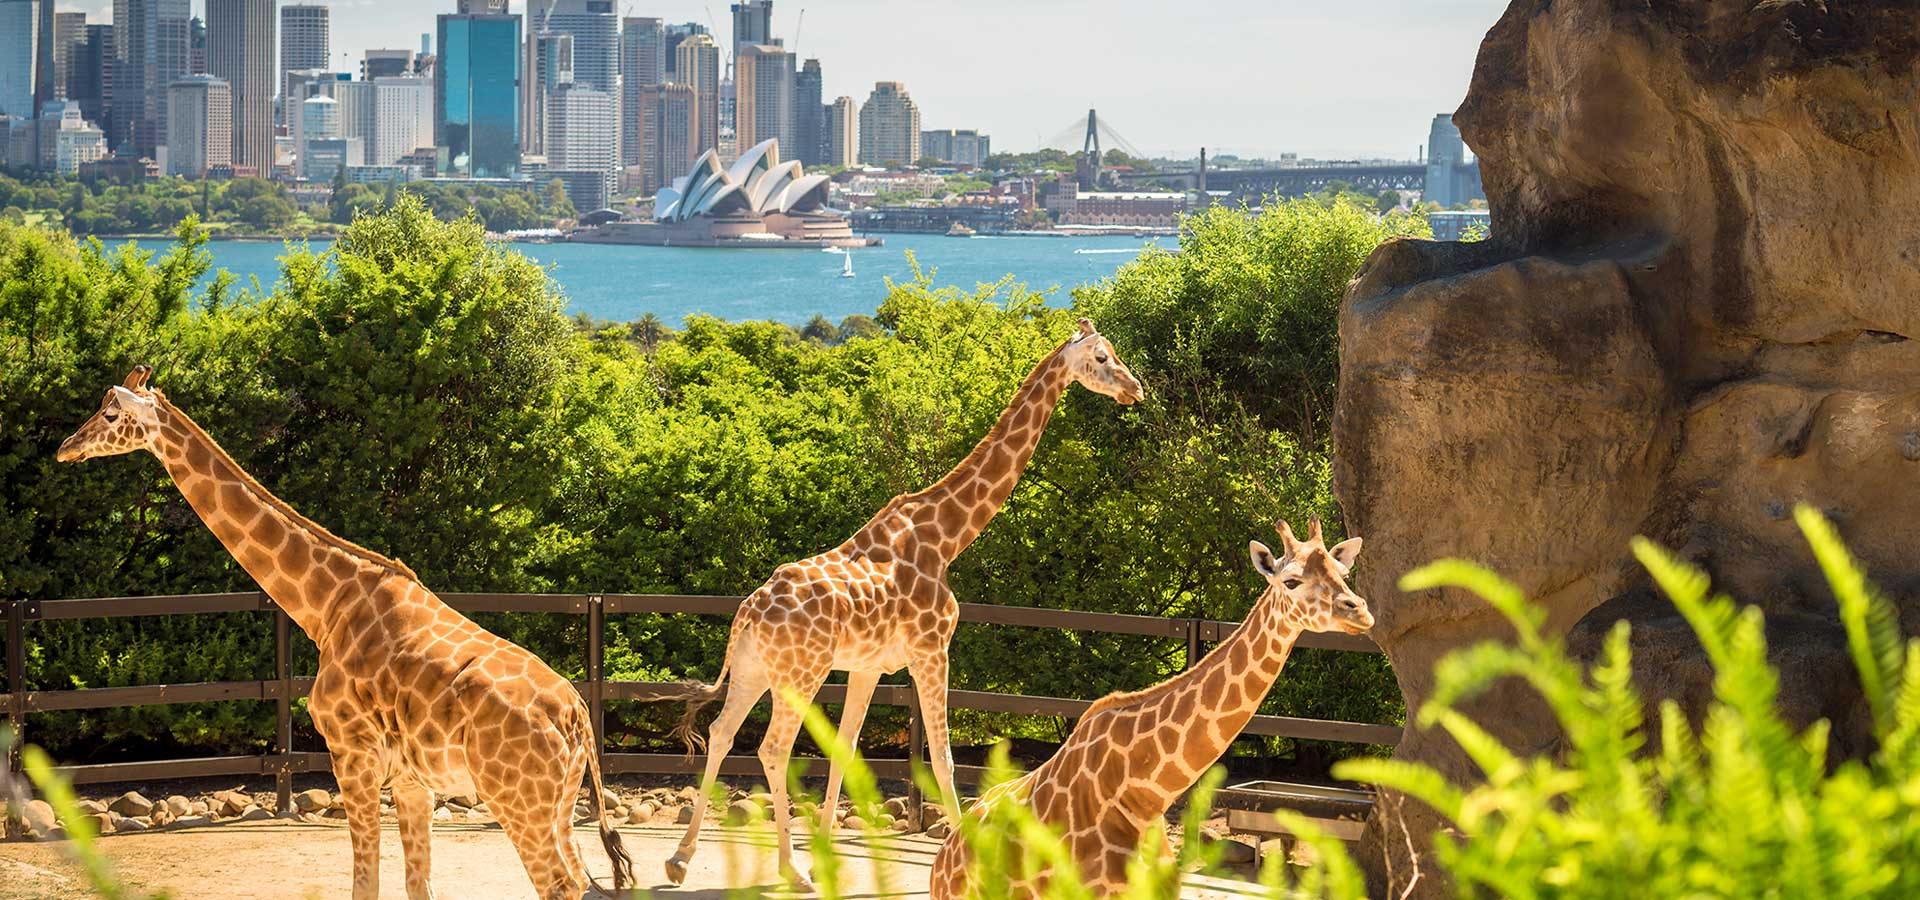 What You Must Experience on Your First Trip to Sydney